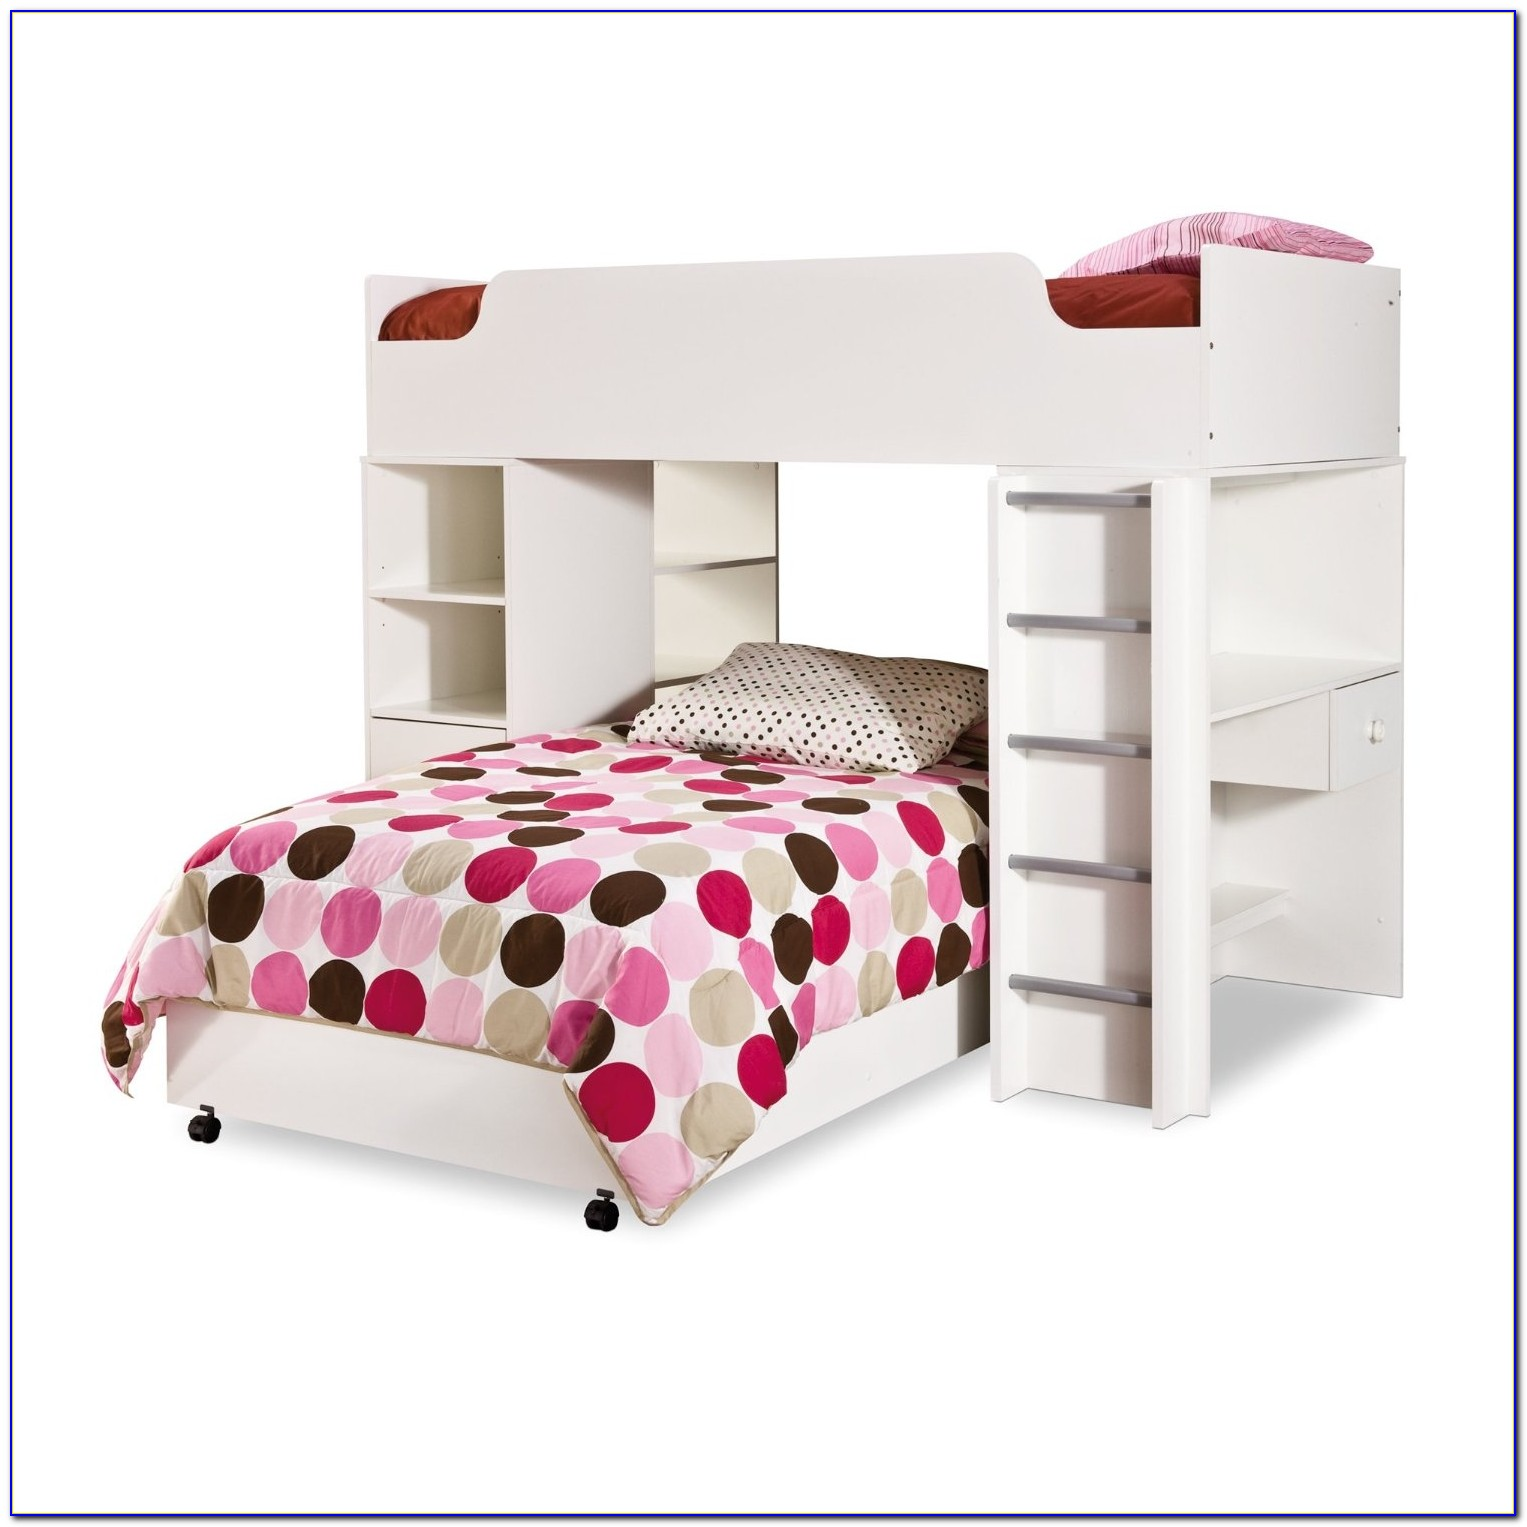 Duro Z Bunk Bed Loft With Desk Instructions